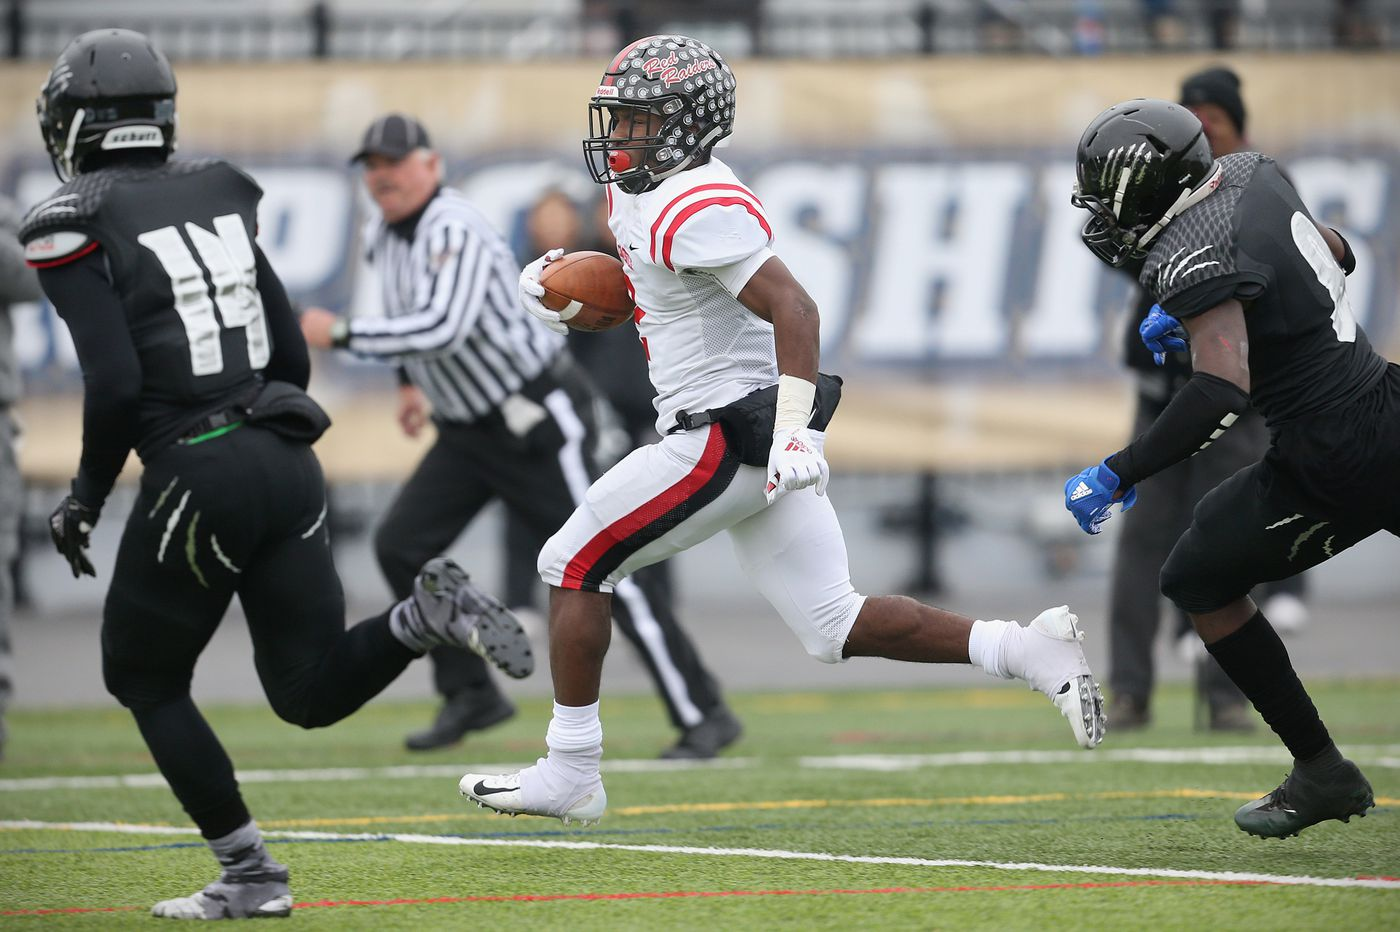 Friday's Southeastern Pa. Football roundup: Dapree Bryant, Ricky Ortega lead Coatesville football past Cumberland Valley